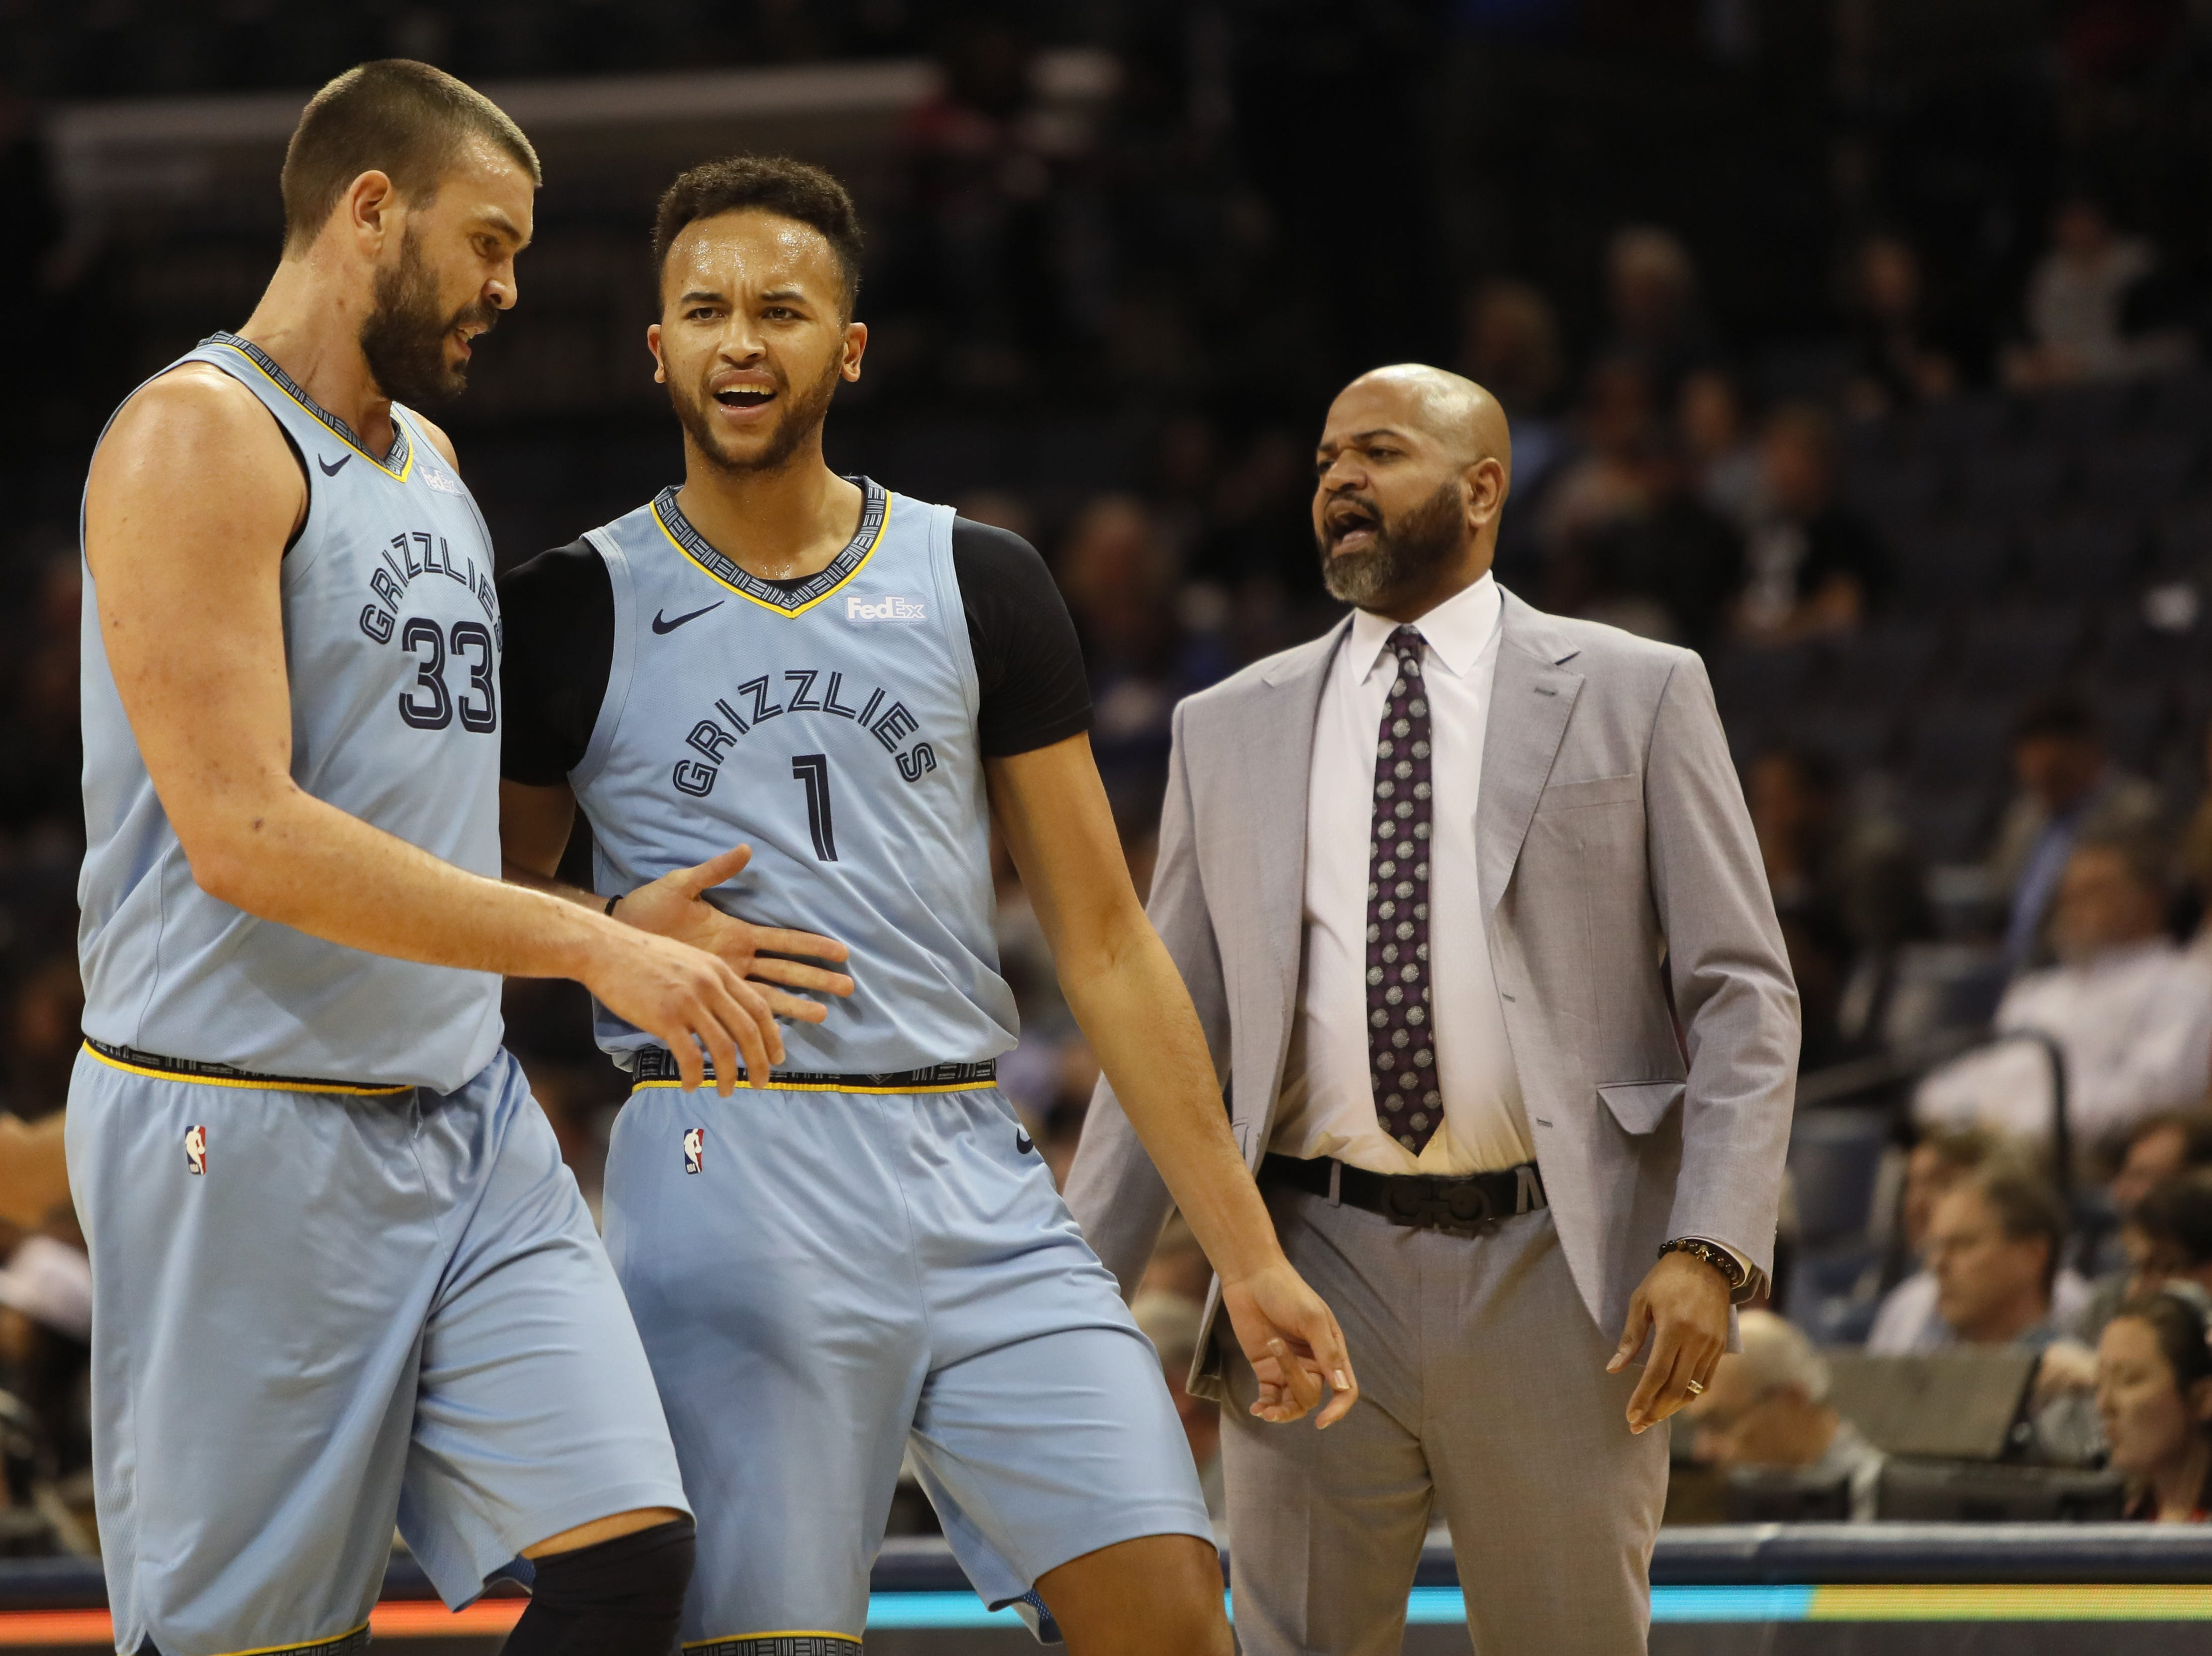 Memphis Grizzlies Marc Gasol, left, and Kyle Anderson walk off the floor during a timeout in their game against the San Antonio Spurs at the FedExForum on Wednesday, Jan. 9, 2019.